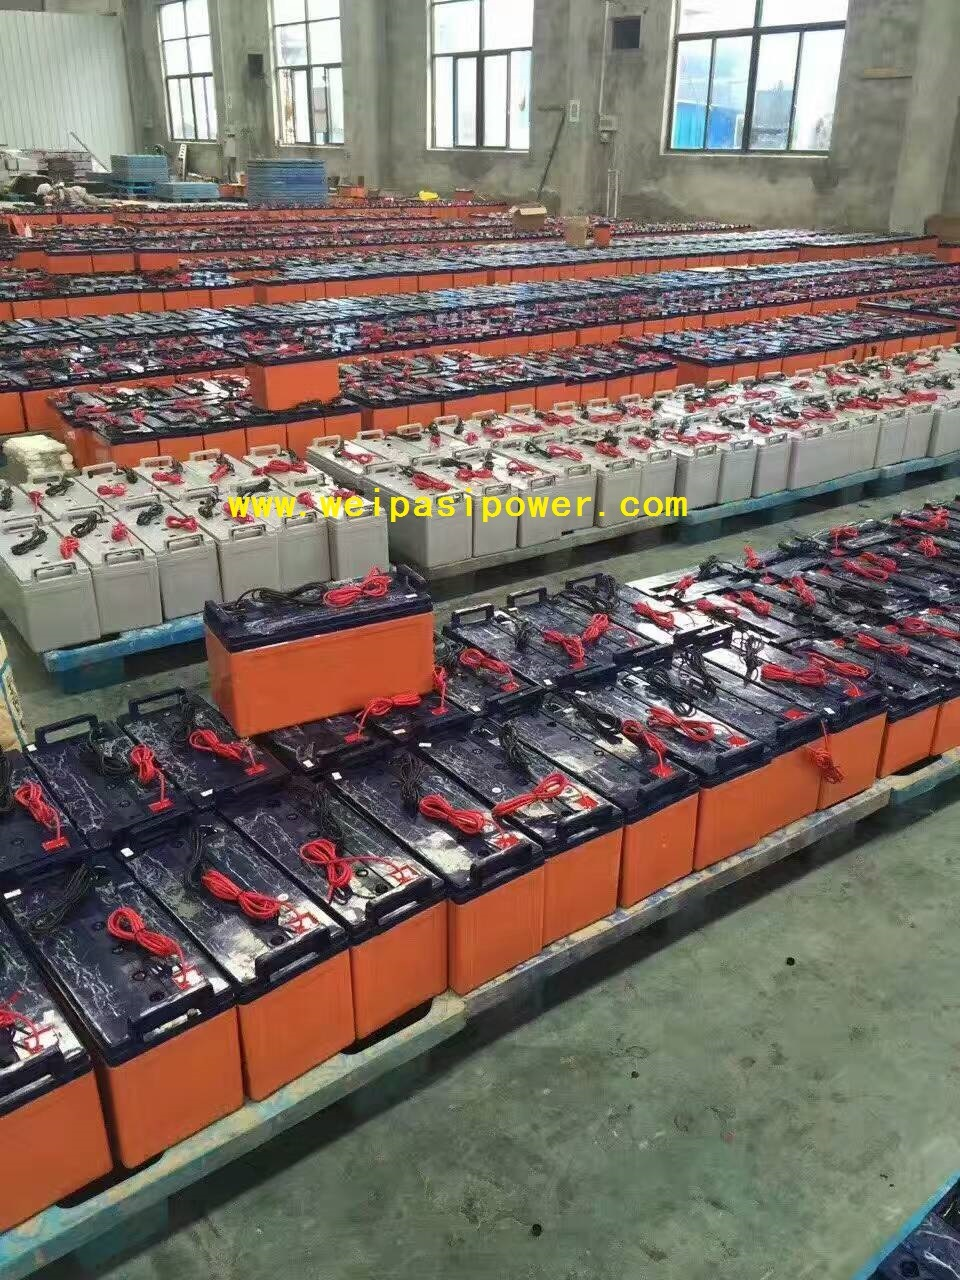 12V120AH,Can customize 42AH,50AH,60AH,65AH,70AH,85AH, 90AH,105AH,110AH,125AH; Solar Battery Wind Energy Battery Non standard Customize products UPS Battery